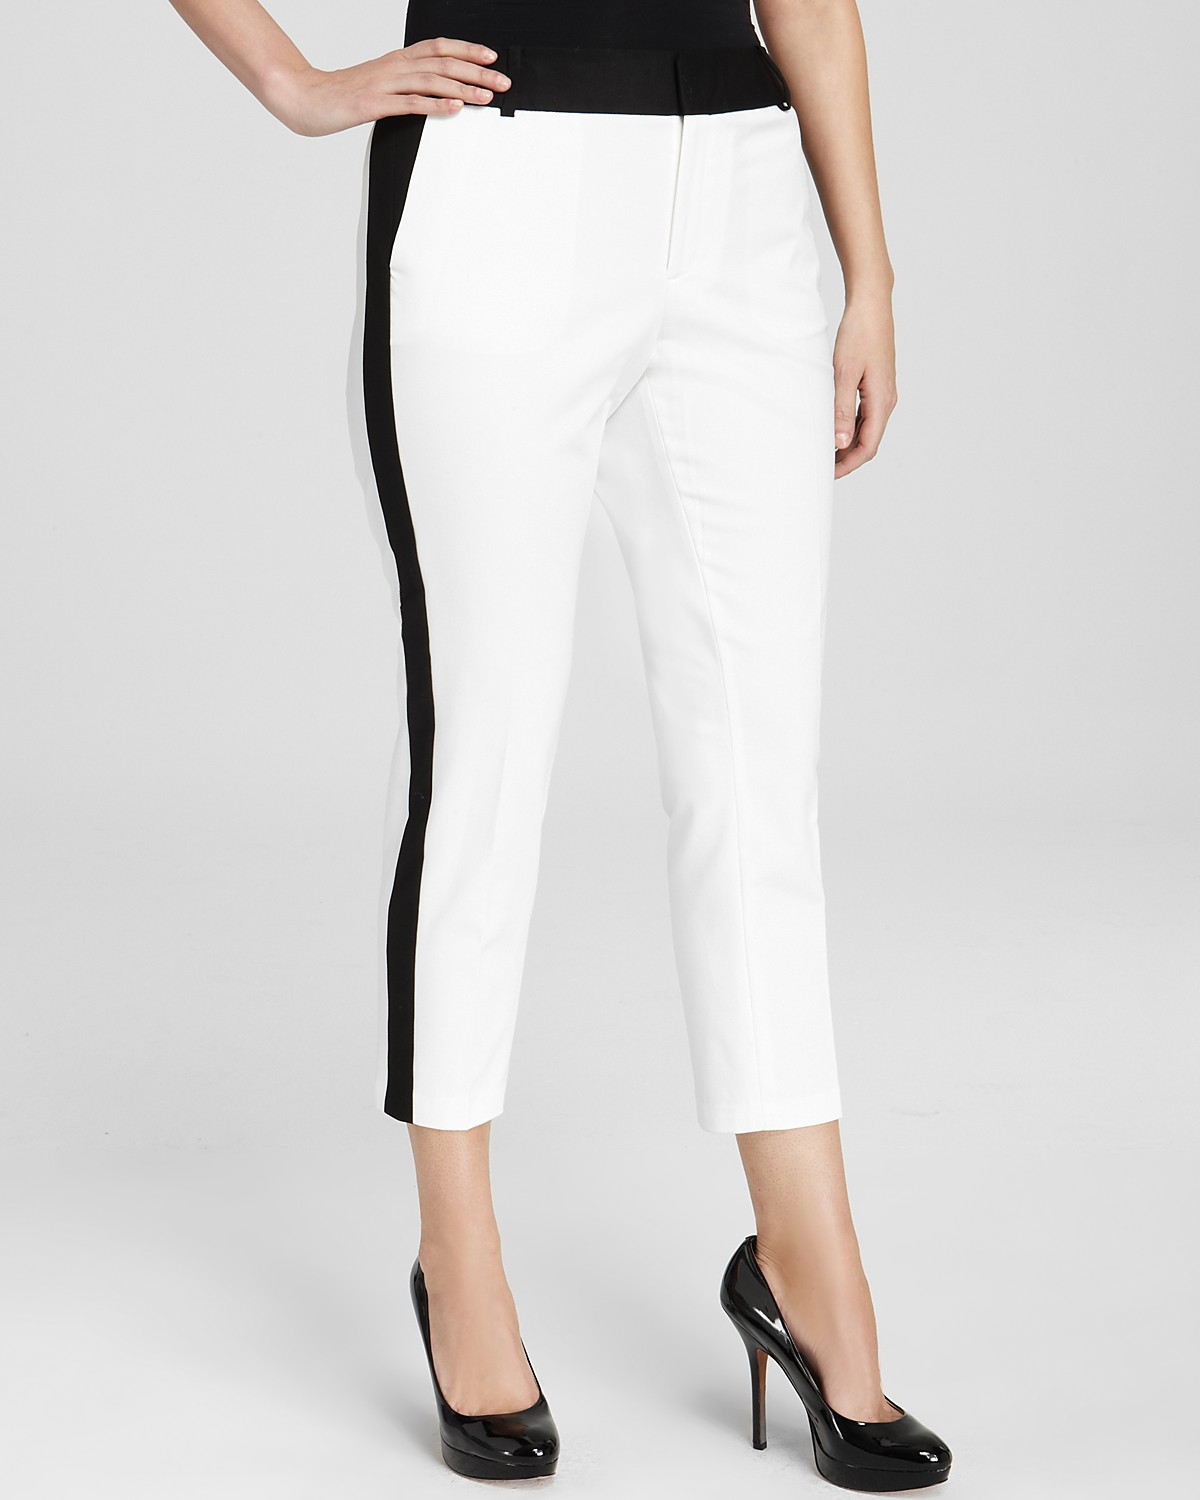 23f6d85bdb8 Plus Size Tuxedo Pants - therunway+therunway+